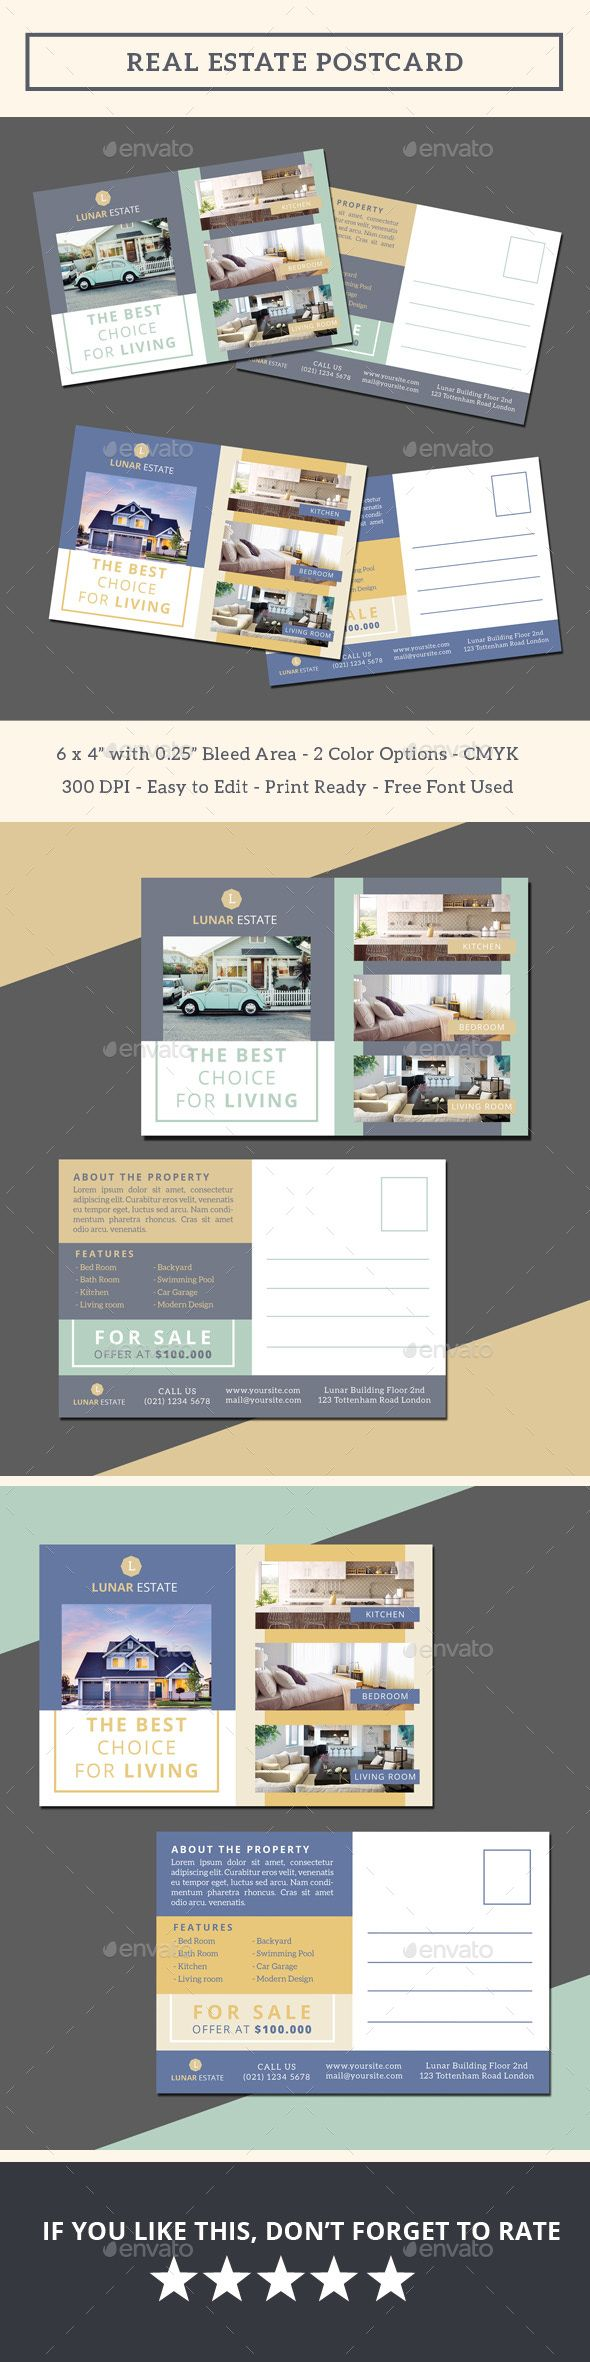 Best 25 Real Estate Postcards Ideas On Pinterest